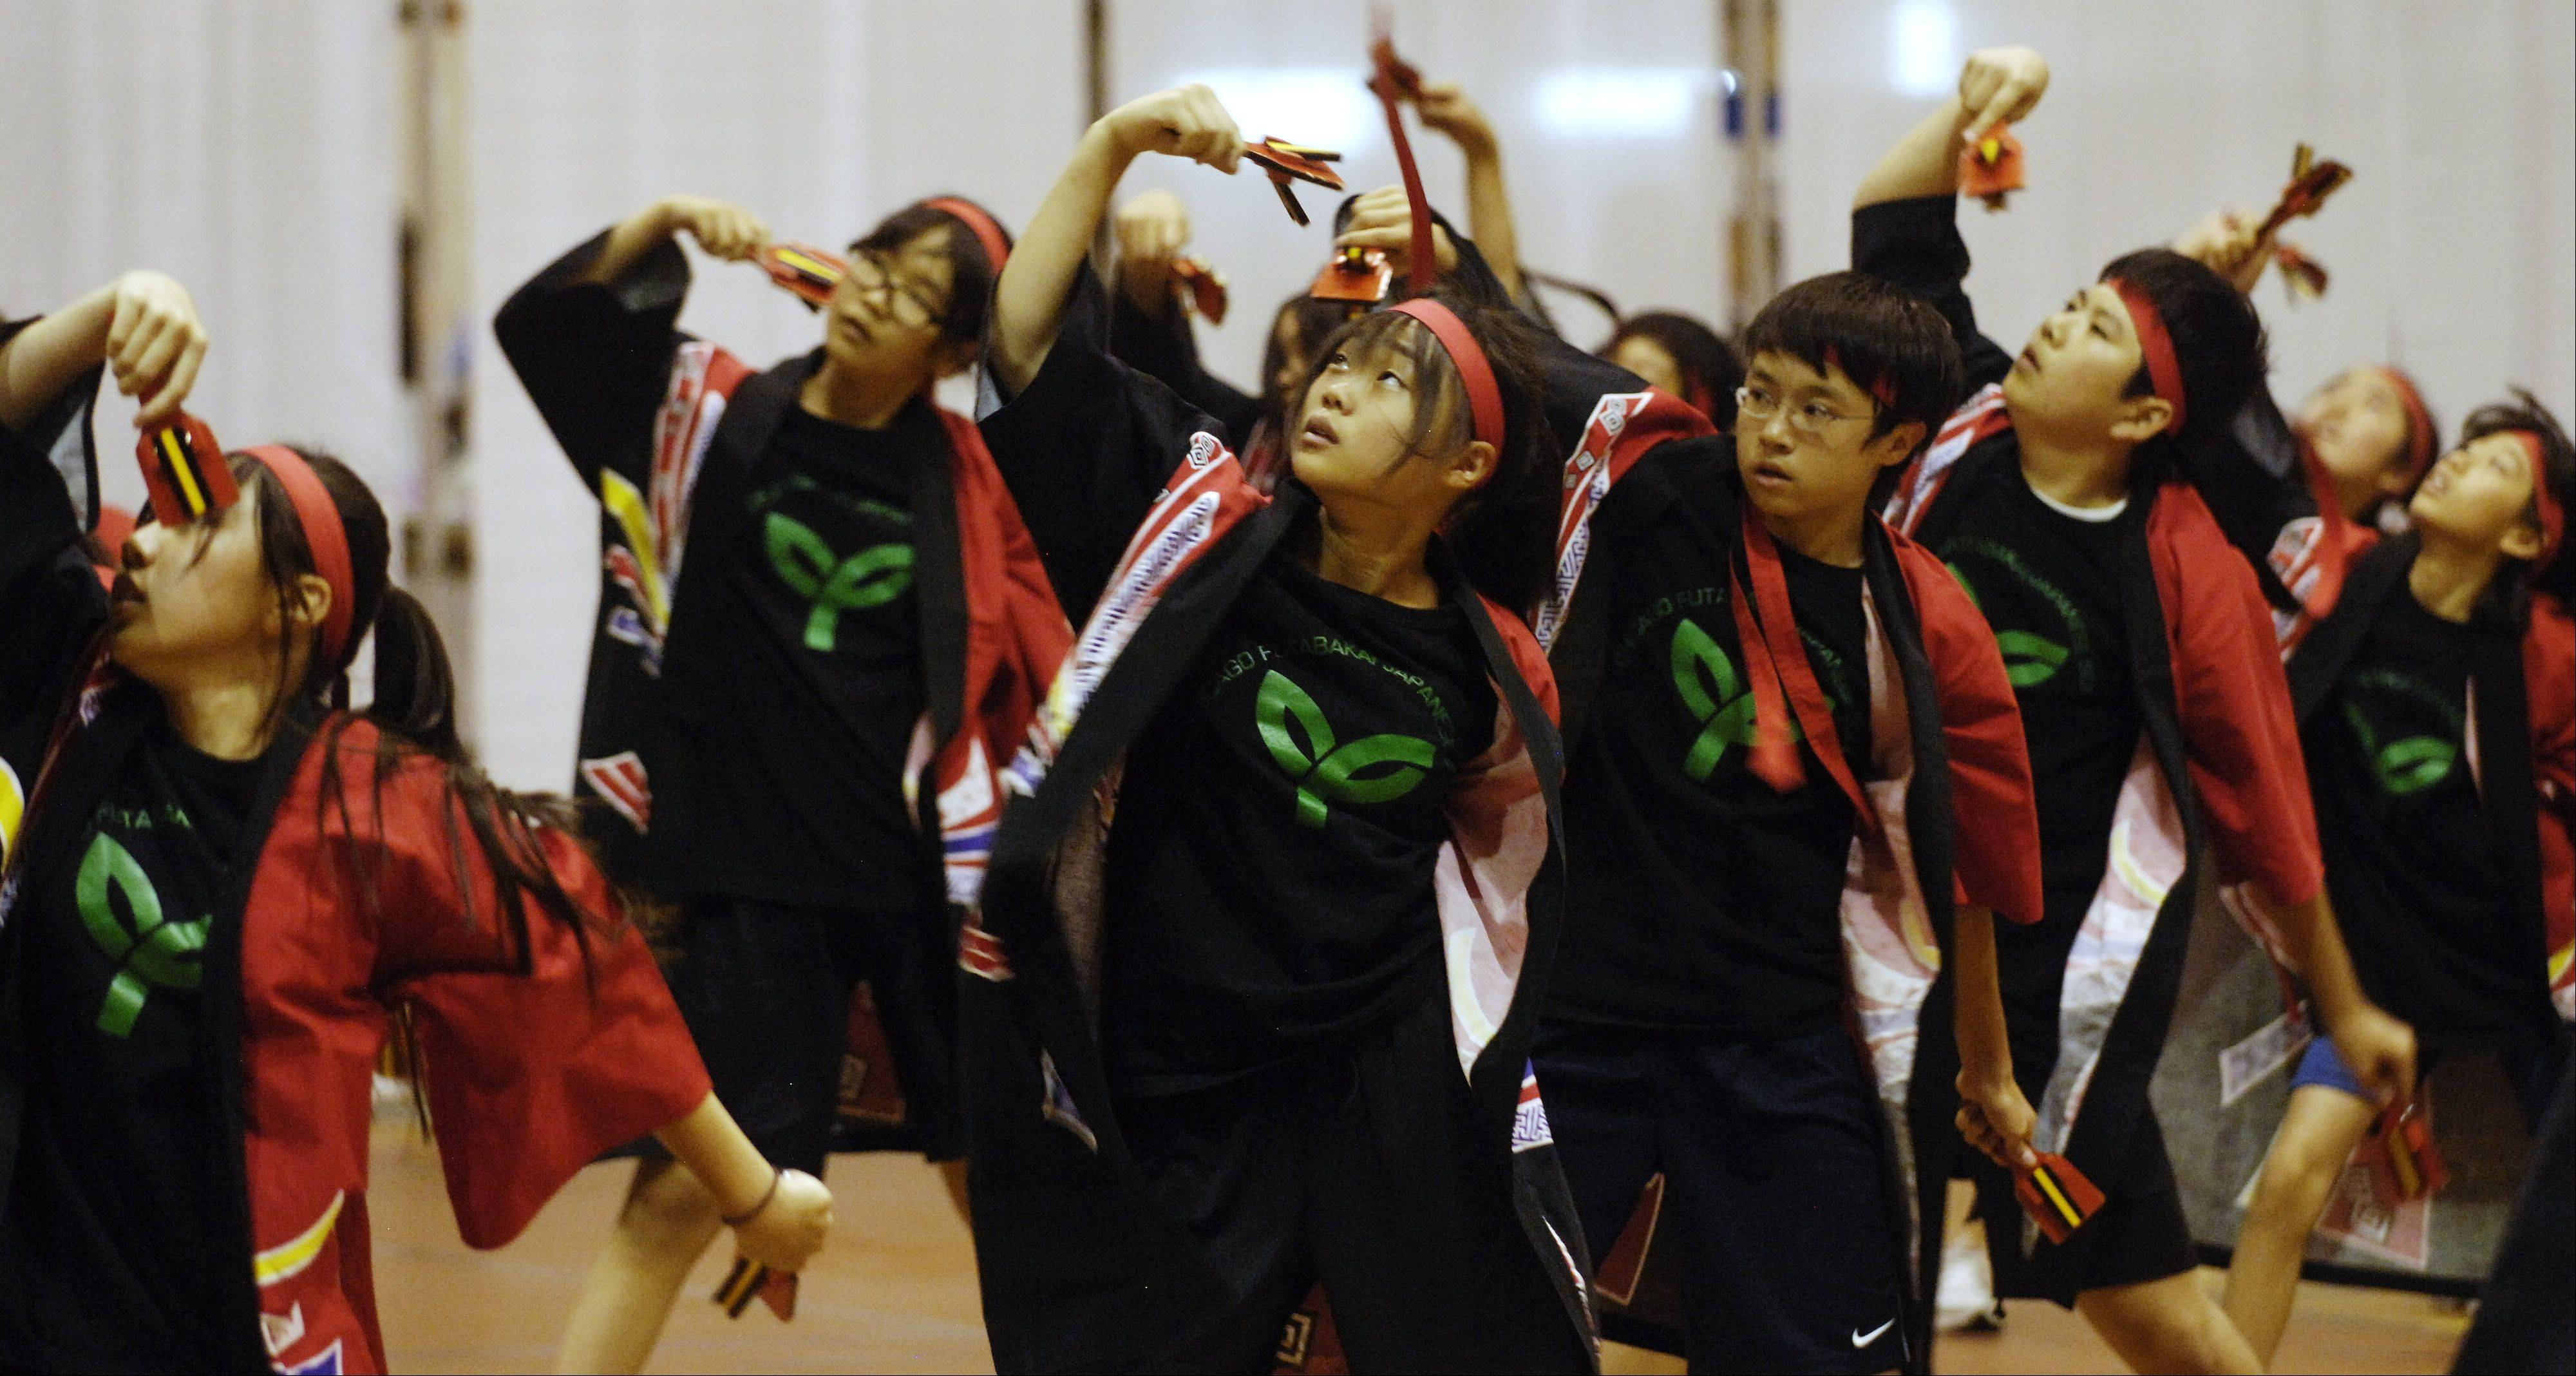 The Chicago Futabakai Japanese School performs a Soran Dance during the 30th anniversary Japan Festival in 2012.